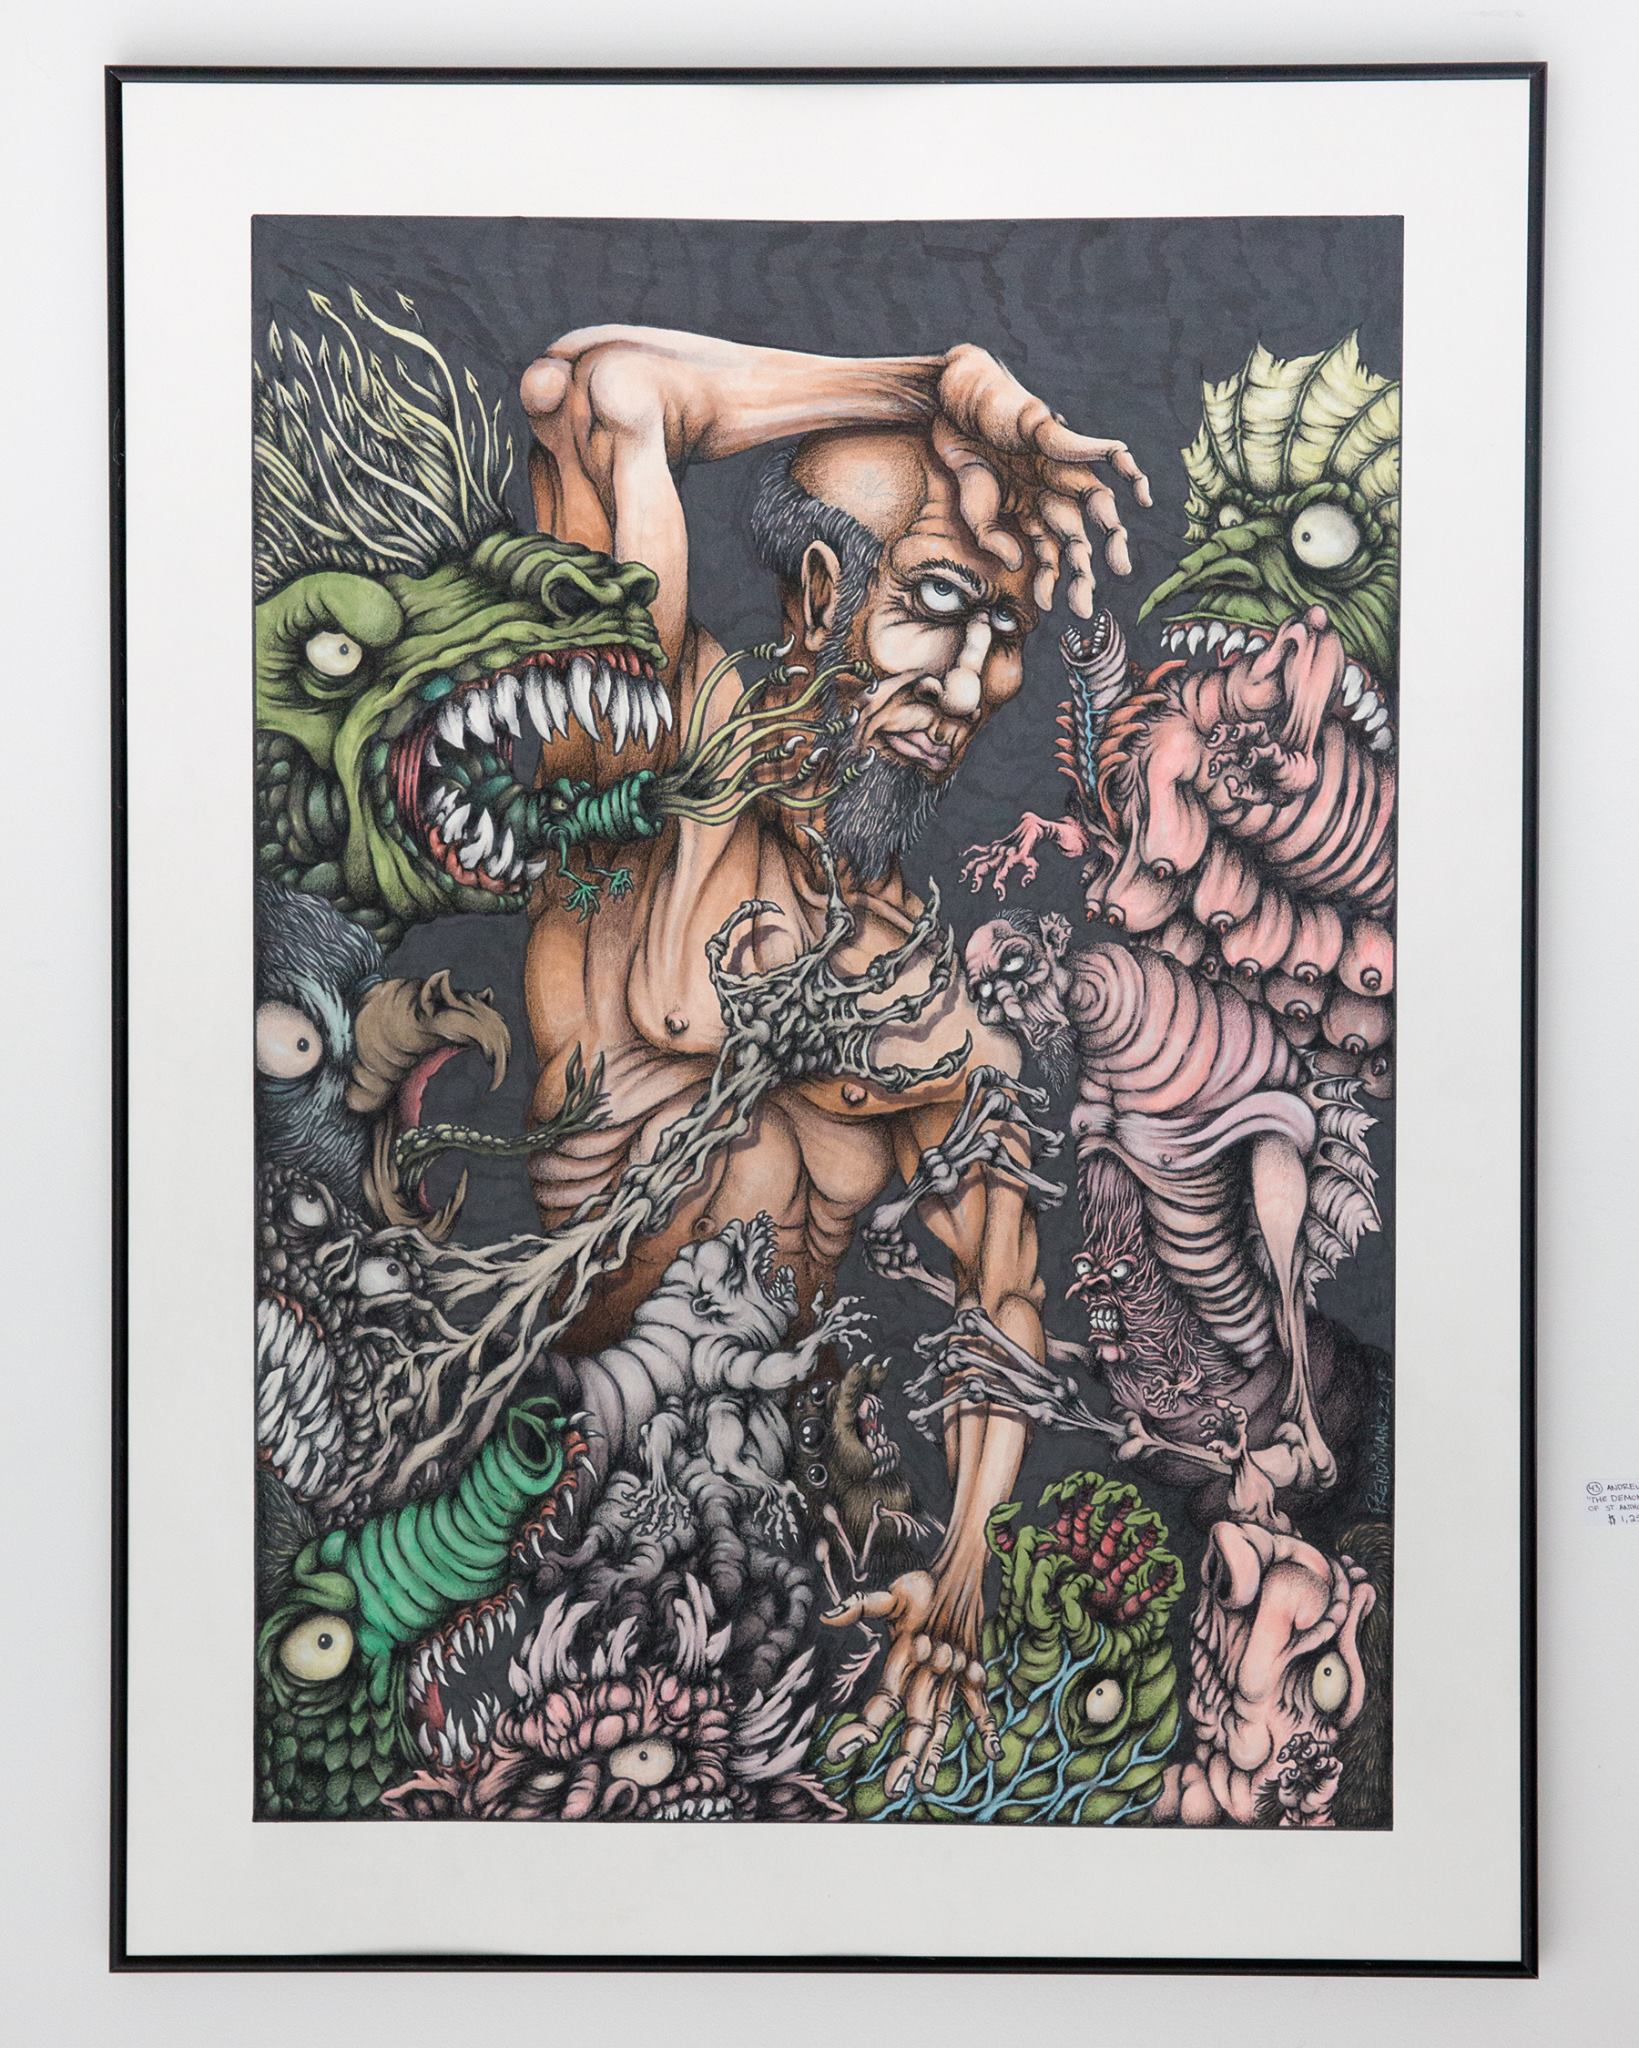 """Andrew Prendimano - """"The Demonic Persecution of St. Anthony the great"""" For Sale: $1250"""